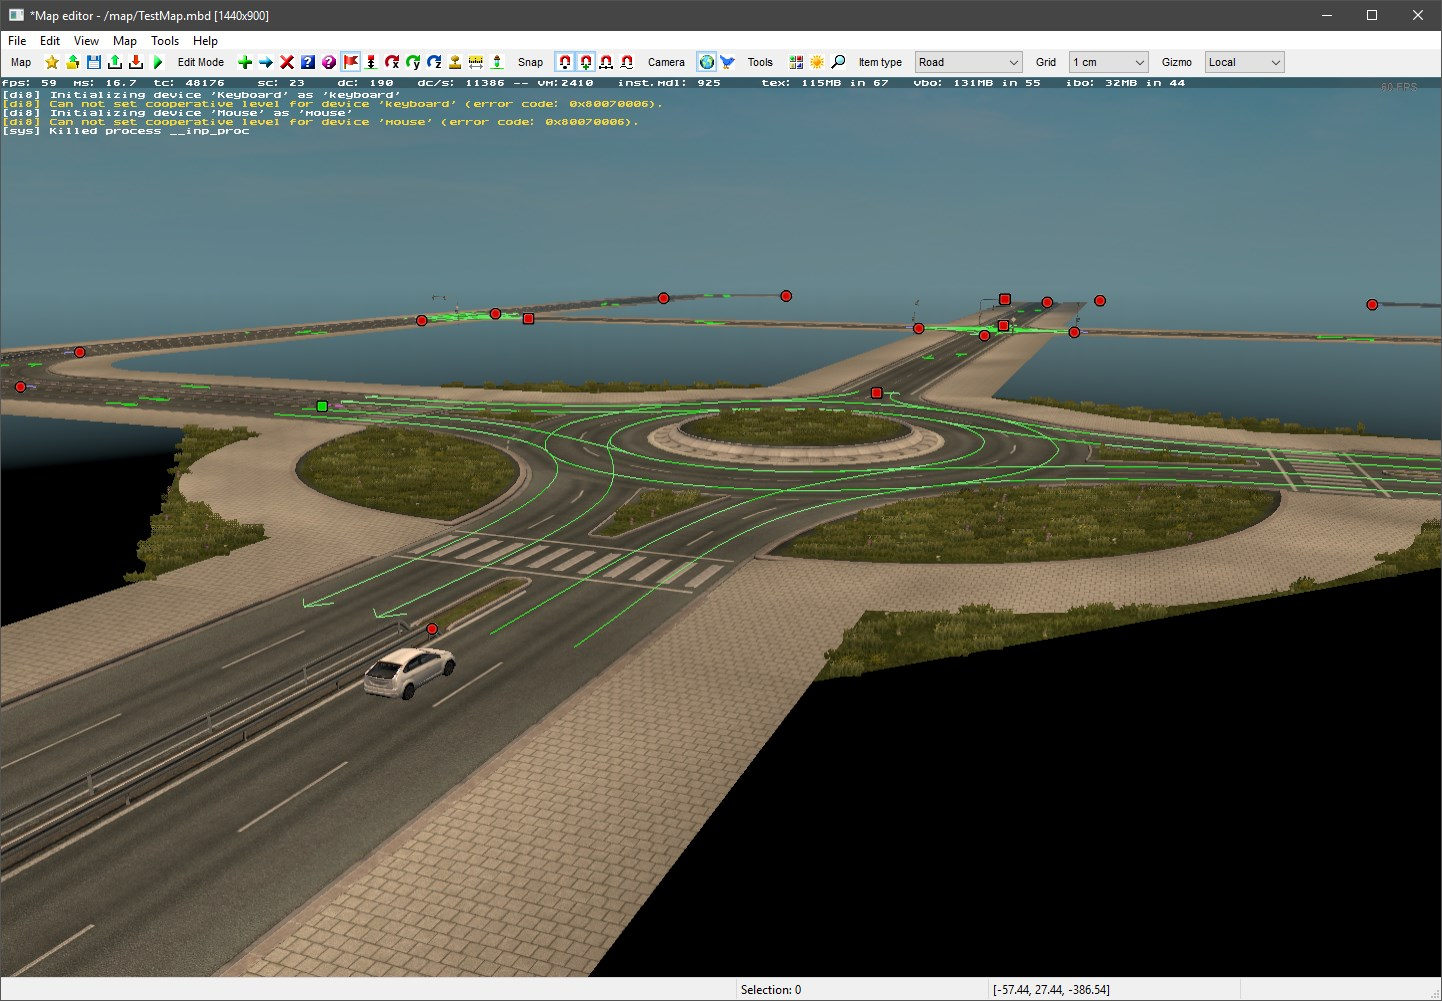 The ETS2/ATS Mapping Guide | Mapping tutorials for the SCS Game Engine